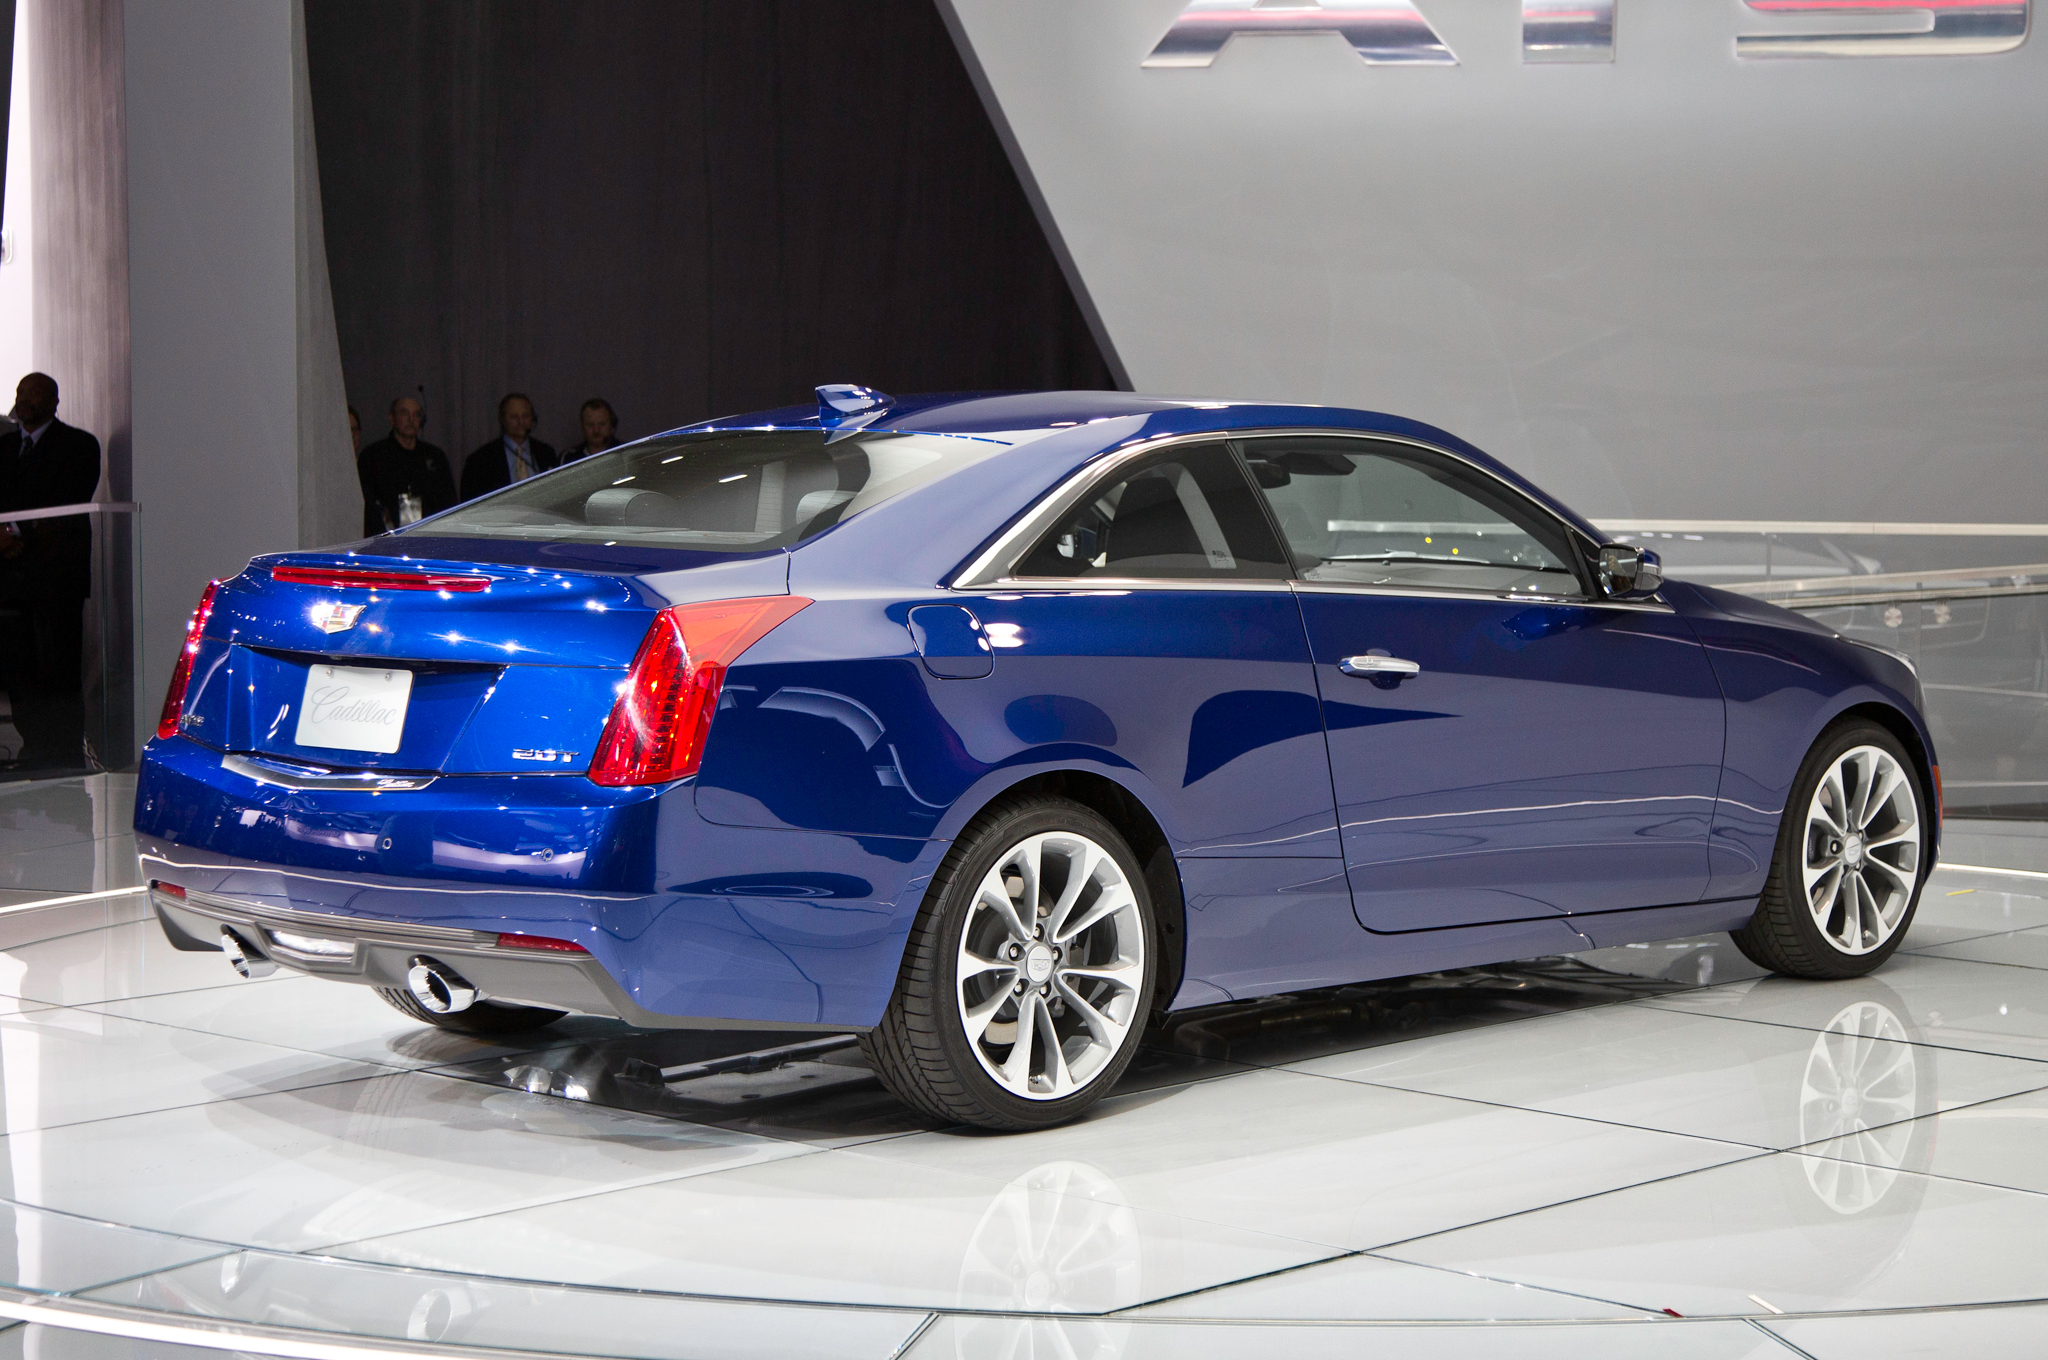 2015 Cadillac Ats Coupe Rear Design (View 2 of 21)